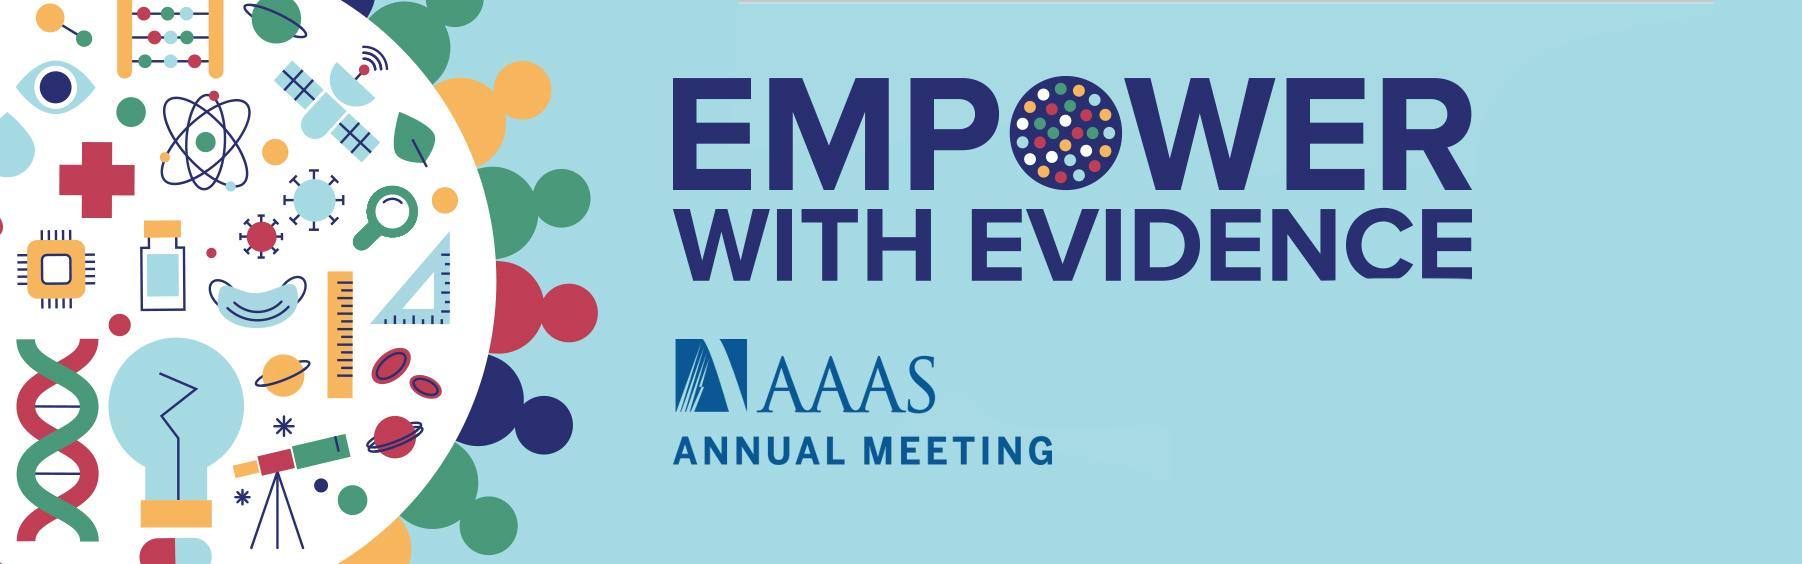 "Theme graphic of the 2022 AAAS Annual Meeting; text ""Empower With Evidence"" and Annual Meeting logo"